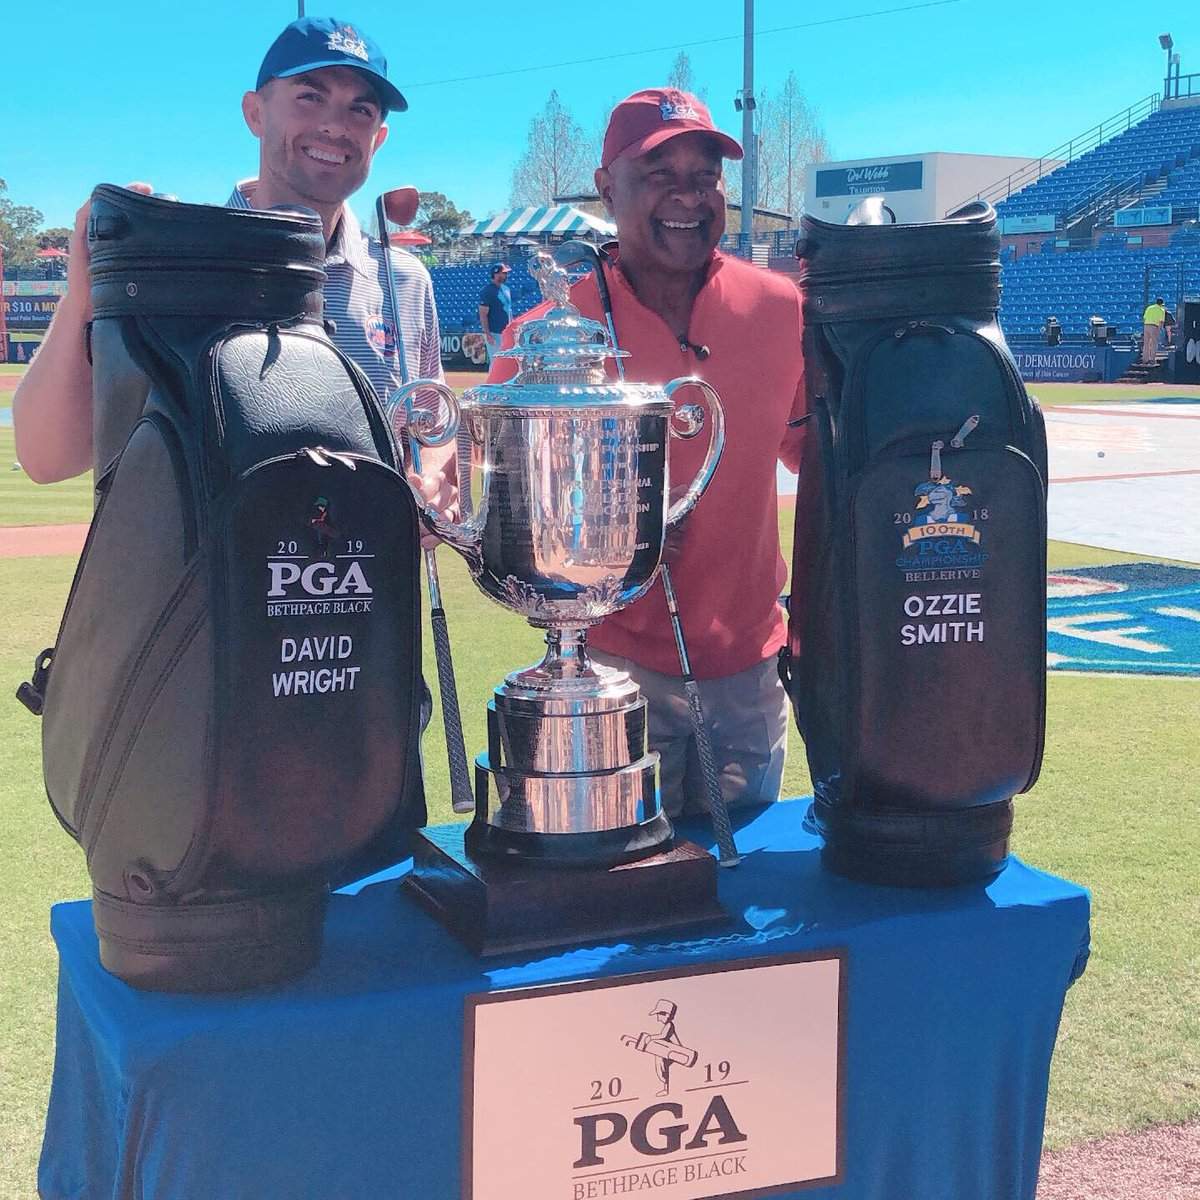 #DavidWright has been named the Honorary Ambassador for the 2019 @PGAChampionship. 2018 Ambassador Ozzie Smith passes him the torch. #PGAChamp <br>http://pic.twitter.com/nbuHVXU6U9